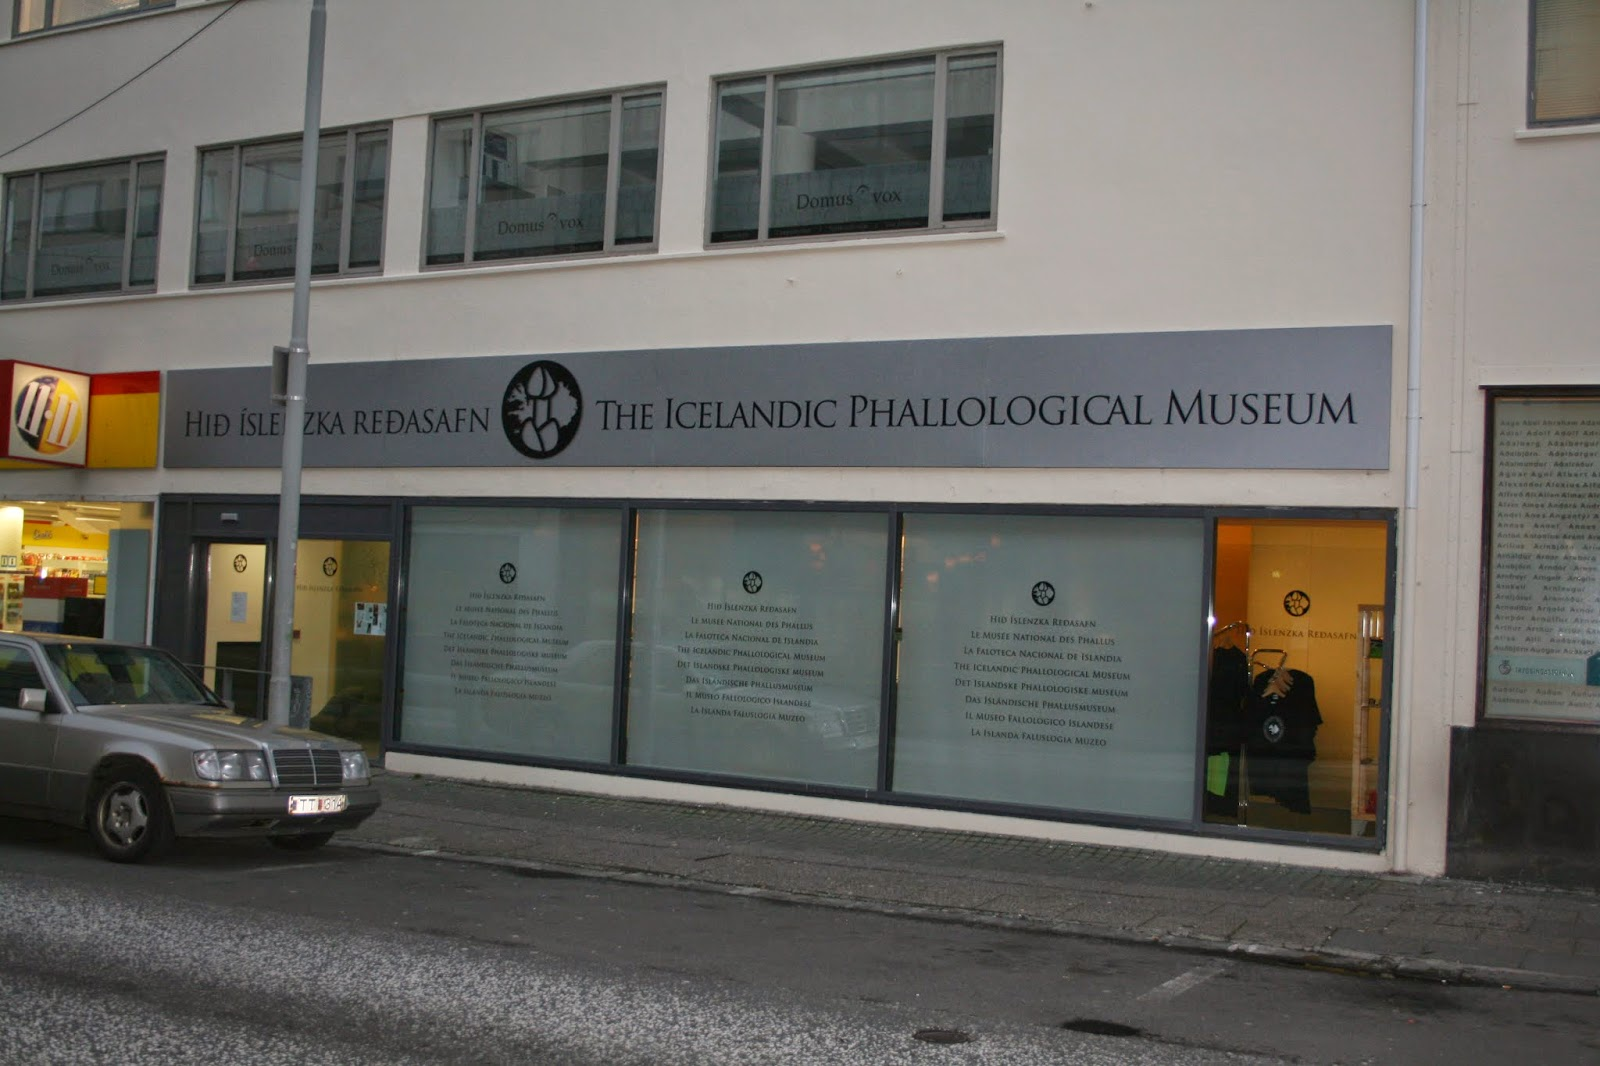 Frontal view of The Icelandic Phallological Museum